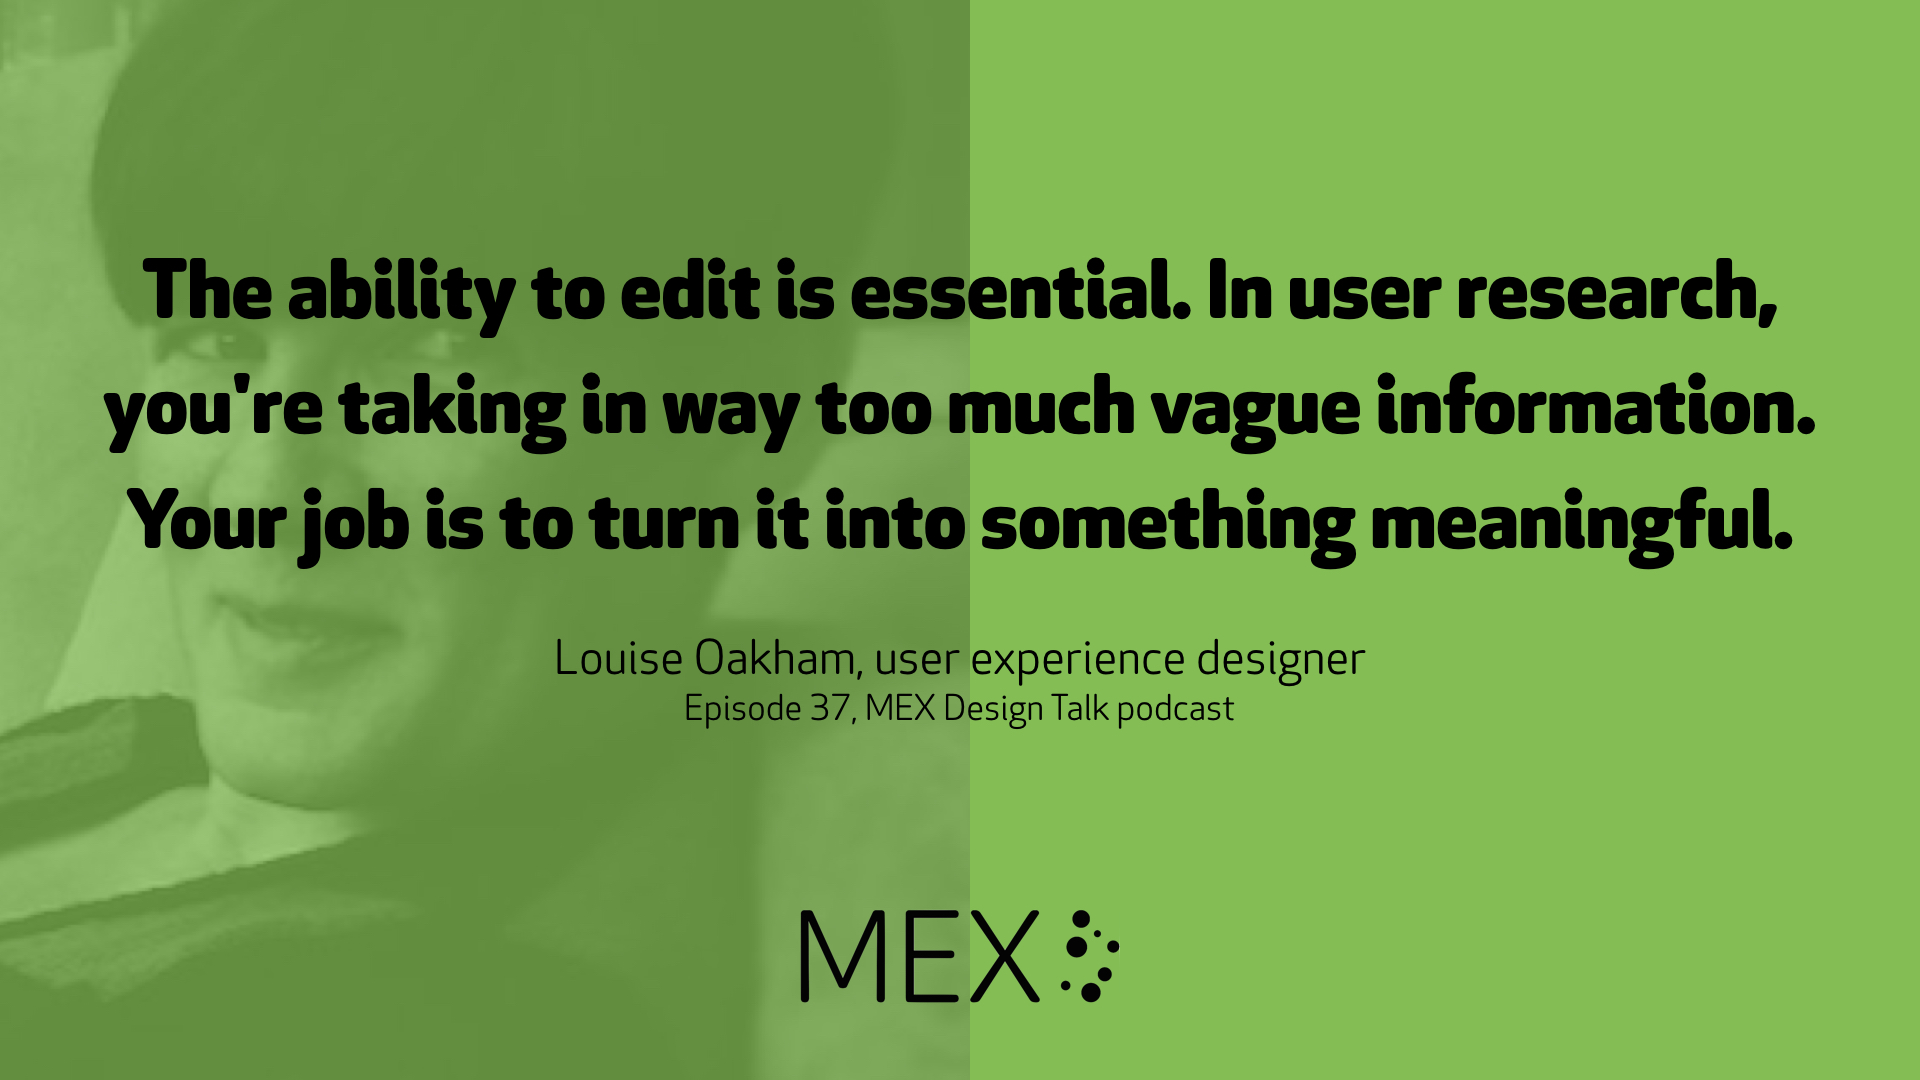 The ability to edit is essential. In user research, you're taking in way too much vague information. Your job is to turn it into something meaningful. Louise Oakham, user experience designer Episode 37, MEX Design Talk podcast